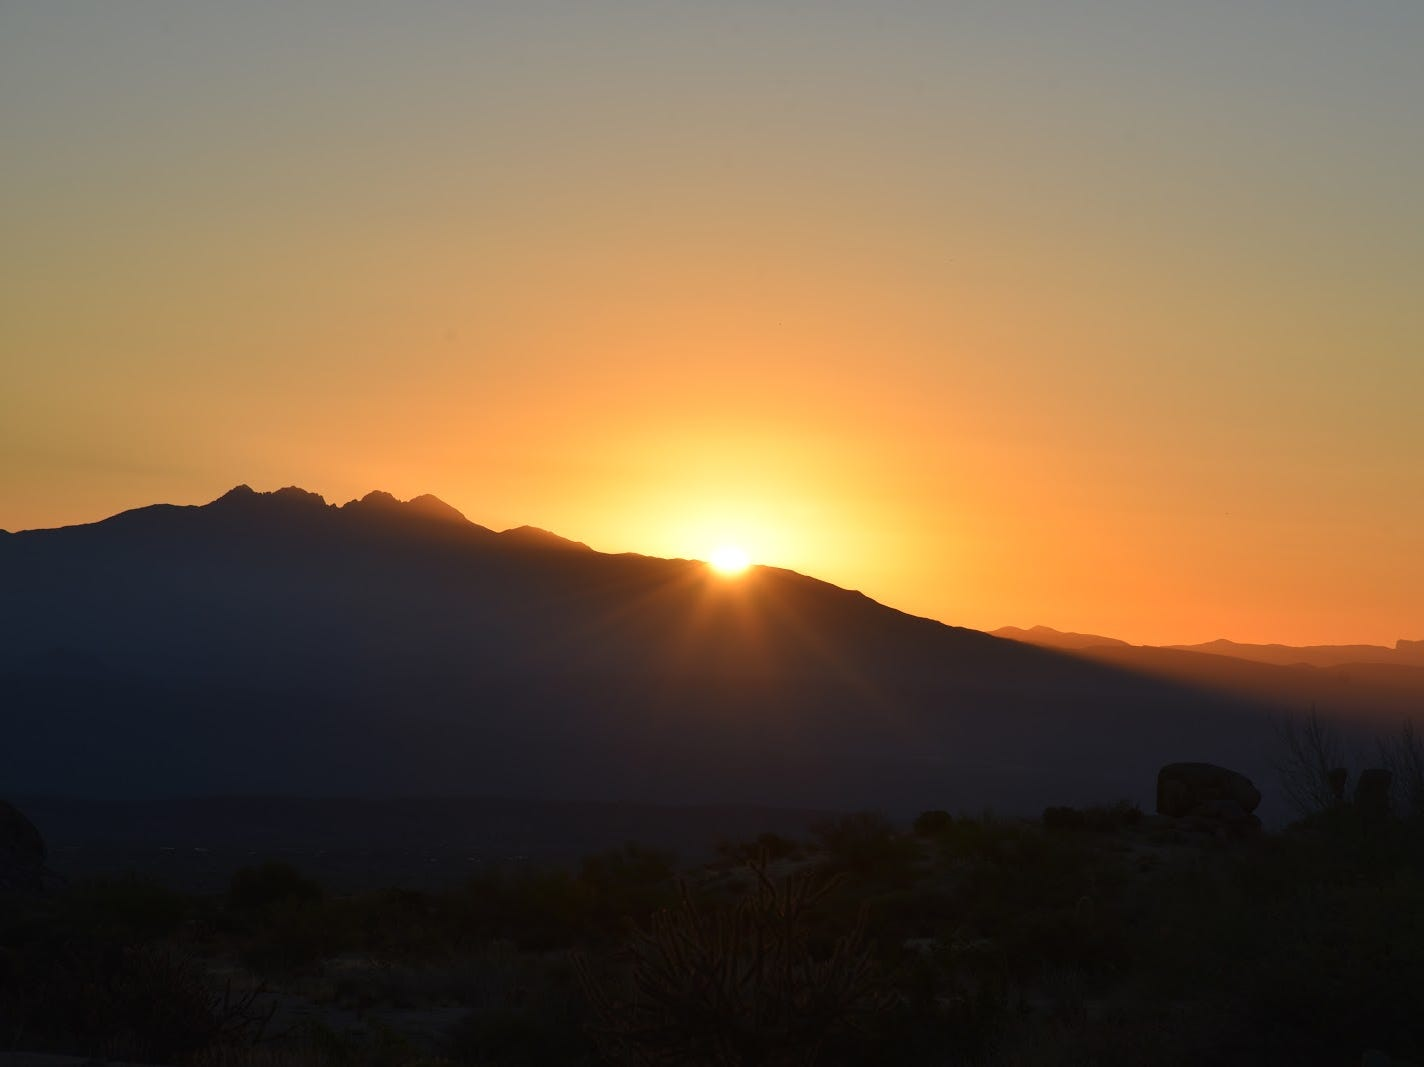 The McDowell Sonoran Preserve is open from sunrise to sunset daily.